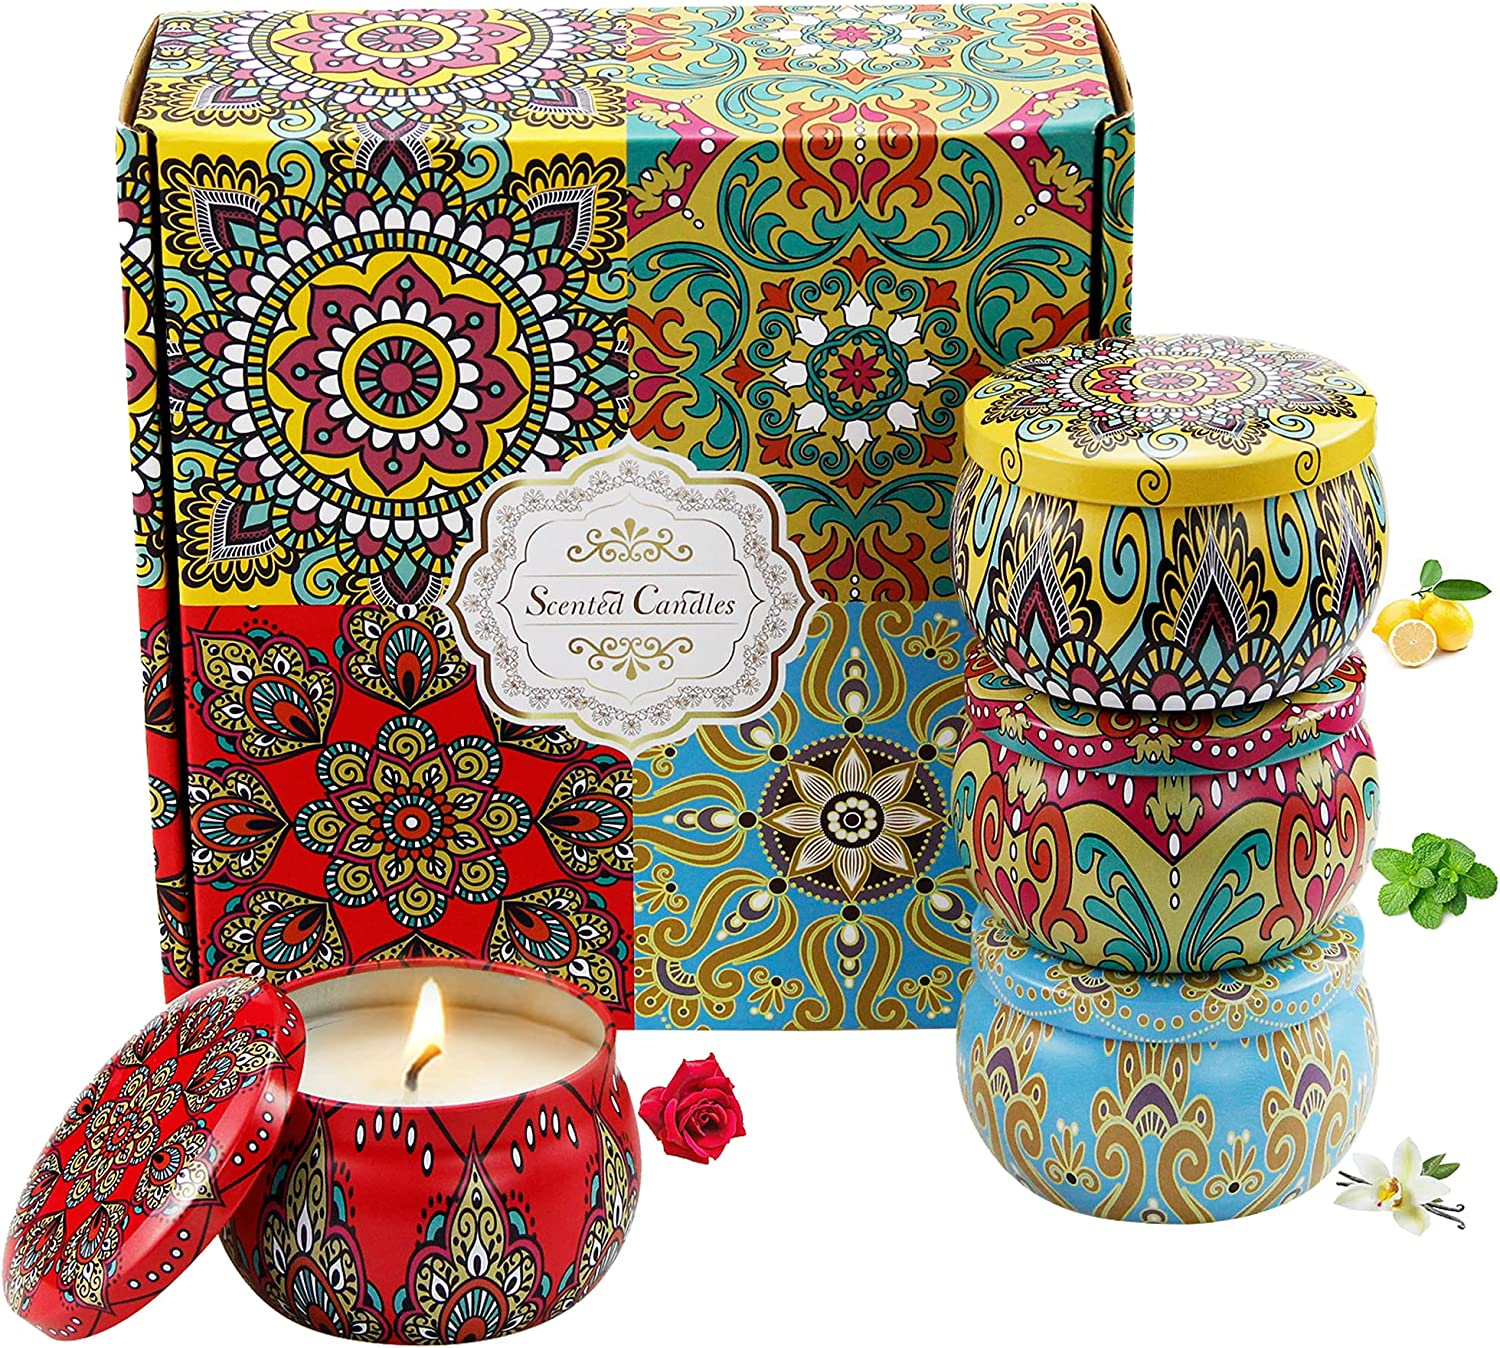 GIEVLROBN Scented Candles Ranking TOP17 Gift Set Popular shop is the lowest price challenge Aromatherapy Ca Wax 100% Soy